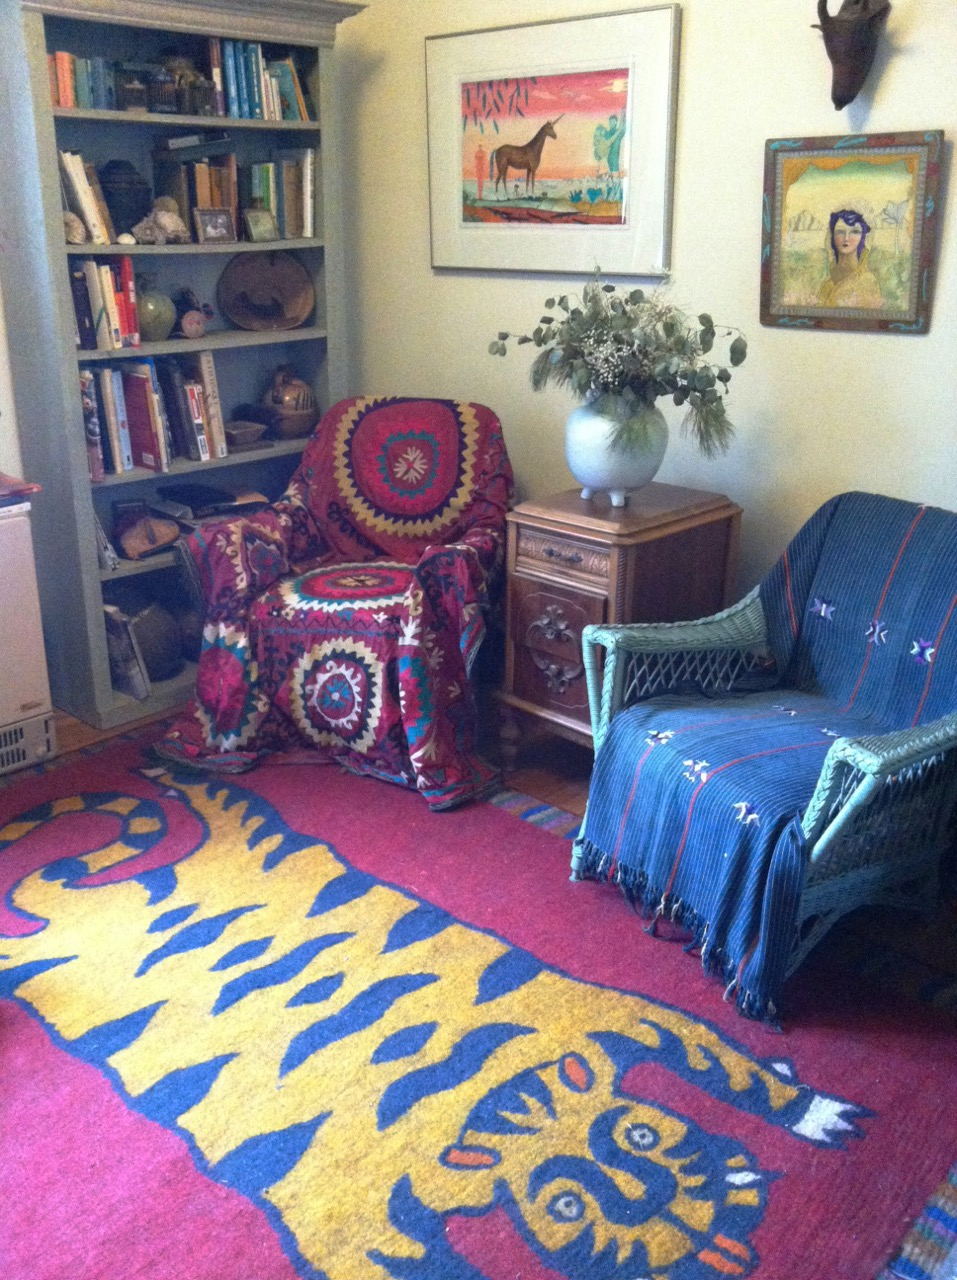 tiger-rug-in-reading-room.jpeg